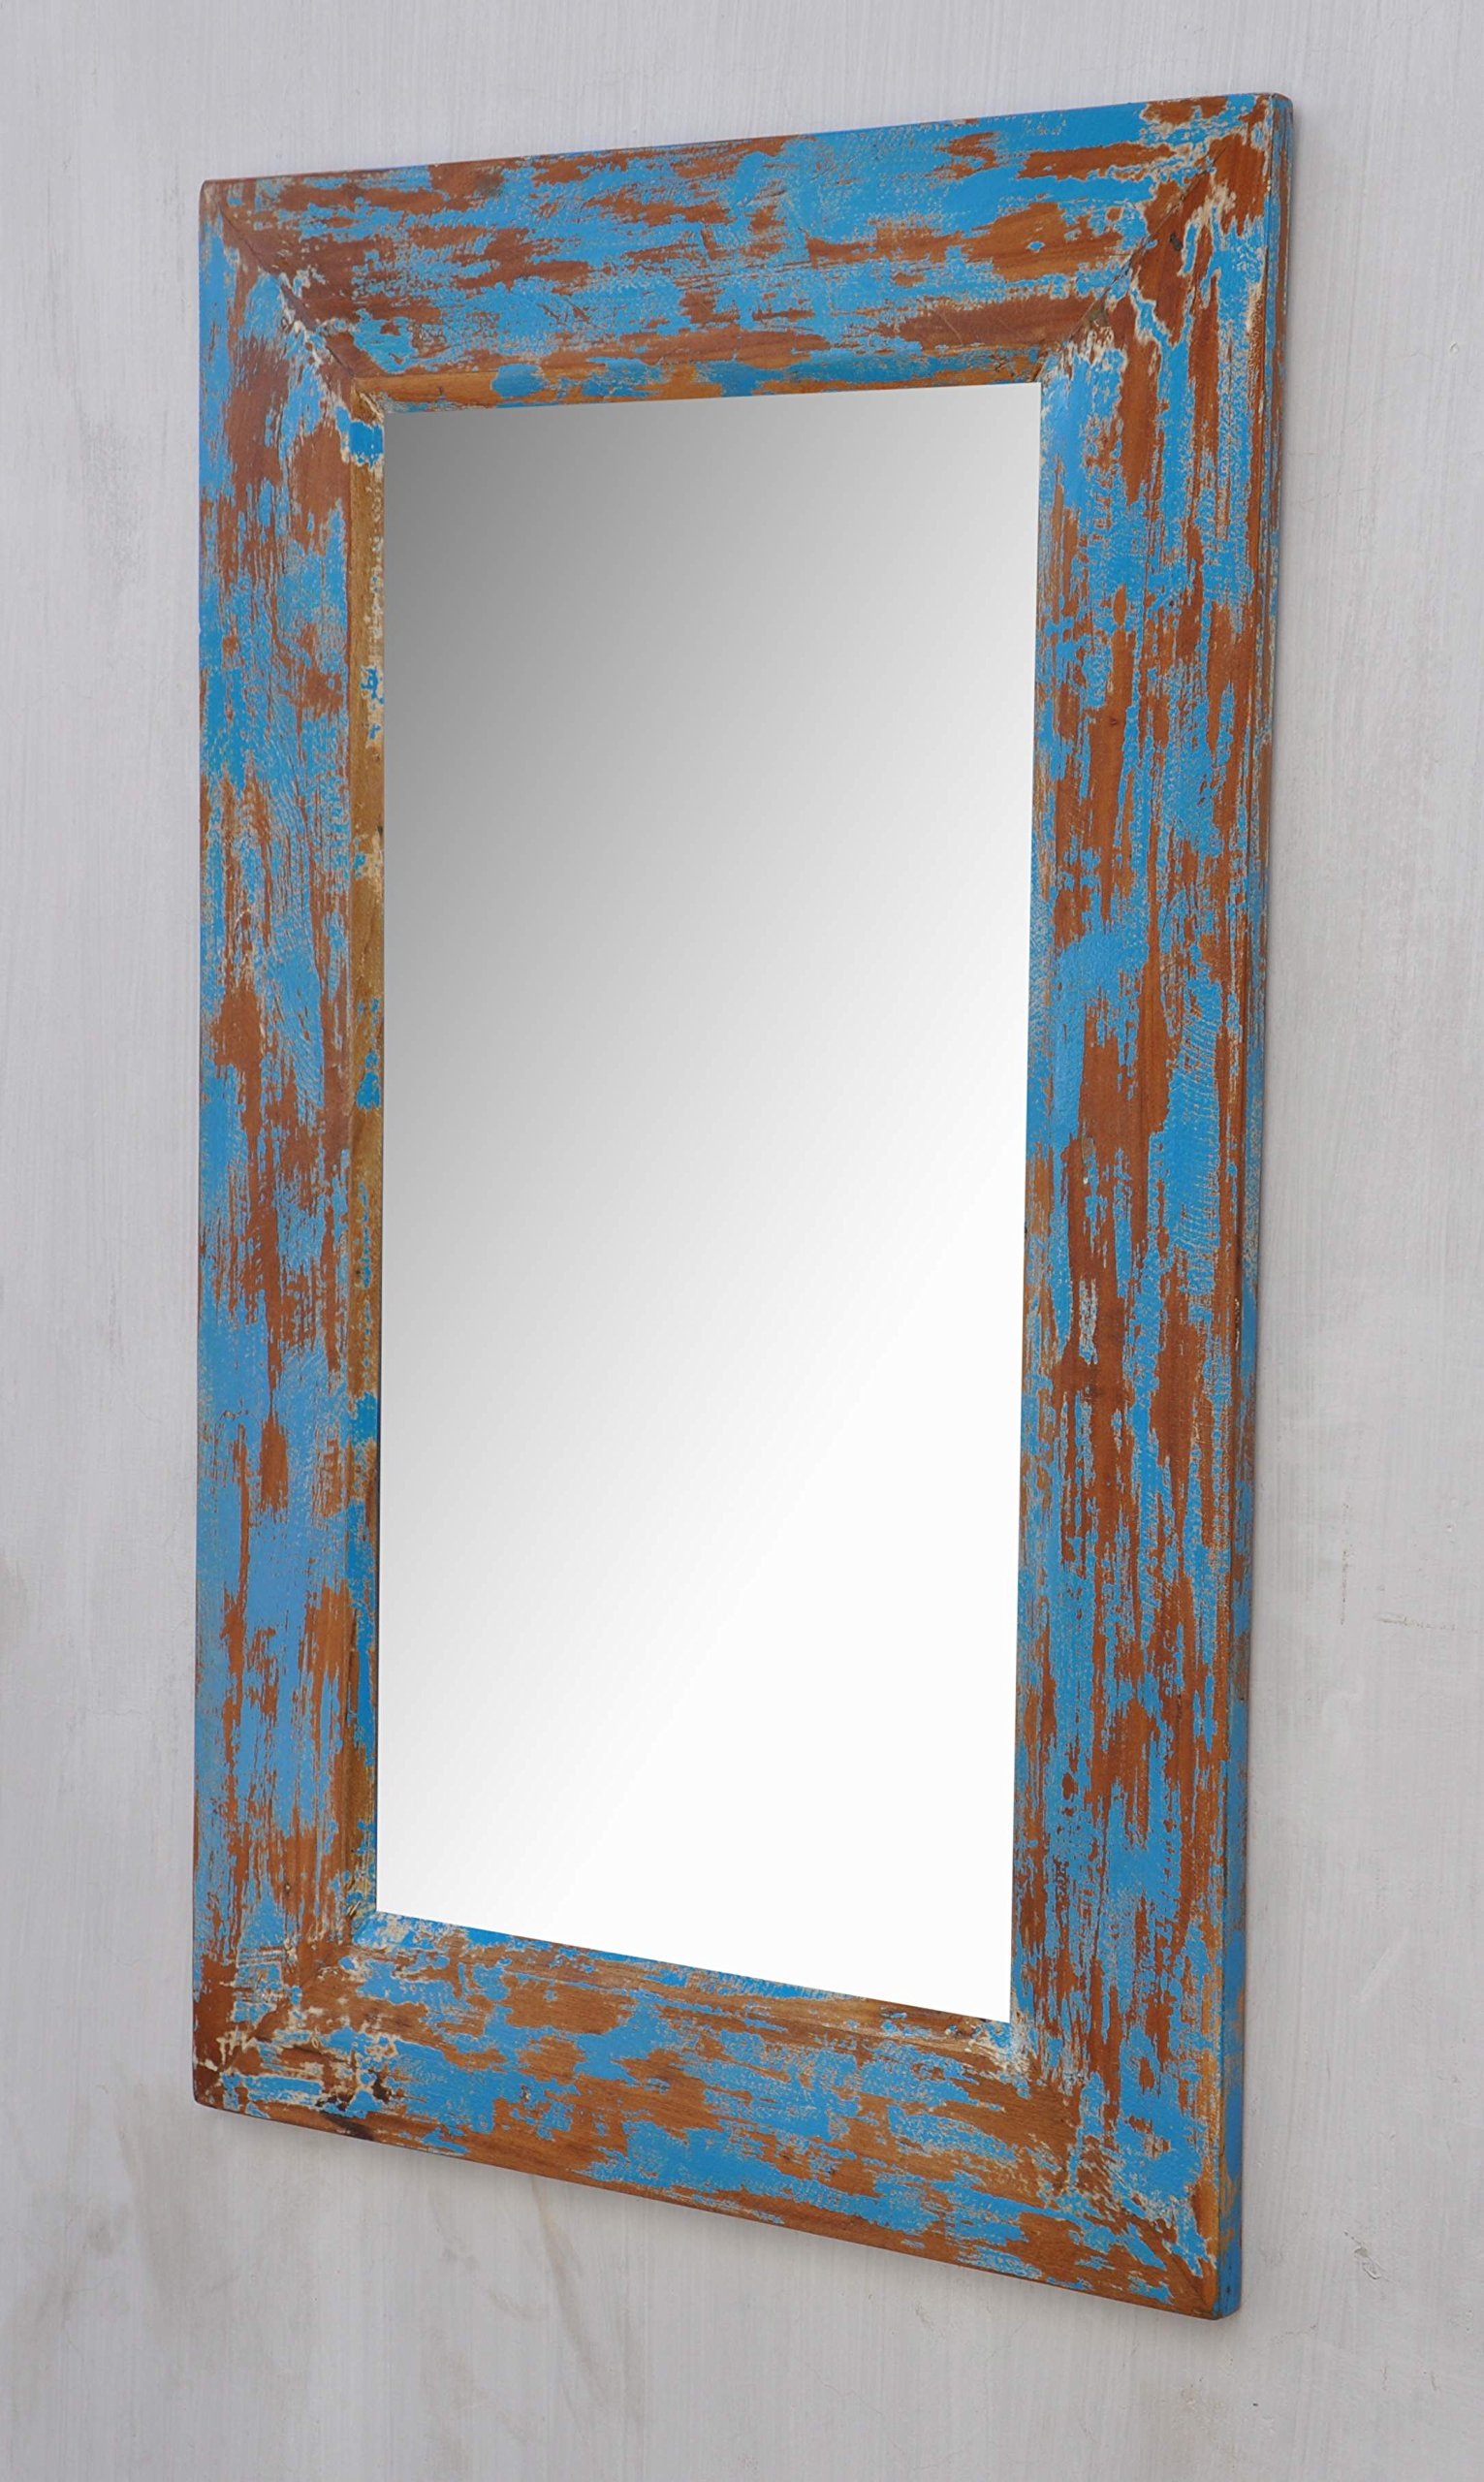 Antique Rustic Wood Mirror Frame Turquoise Colour Style ...